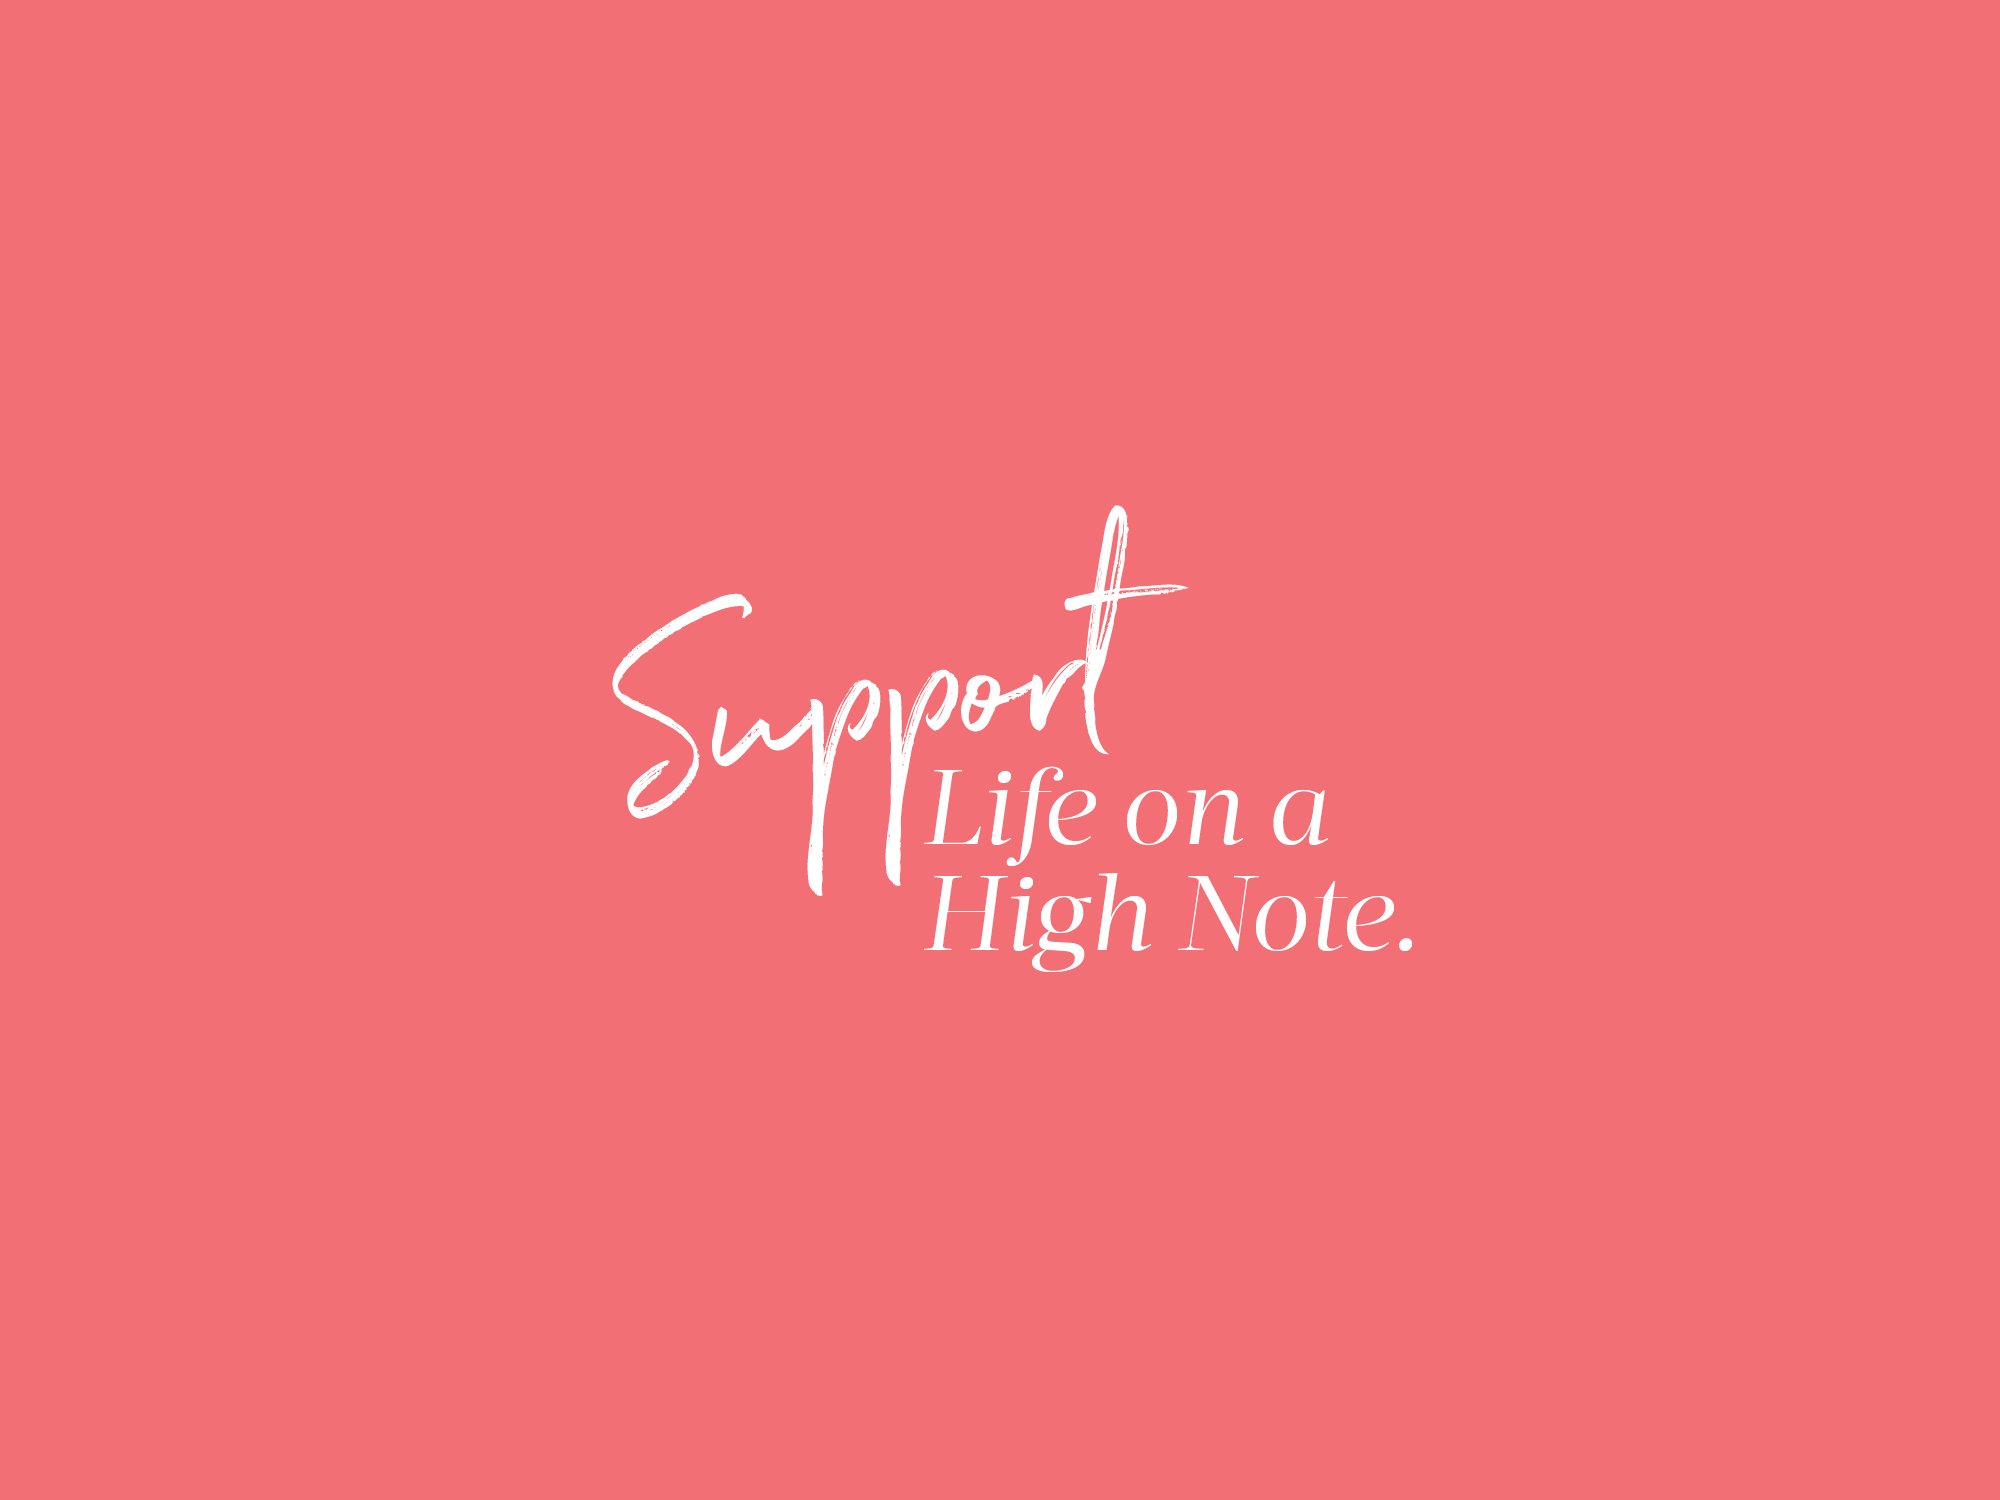 Support Life on a High Note